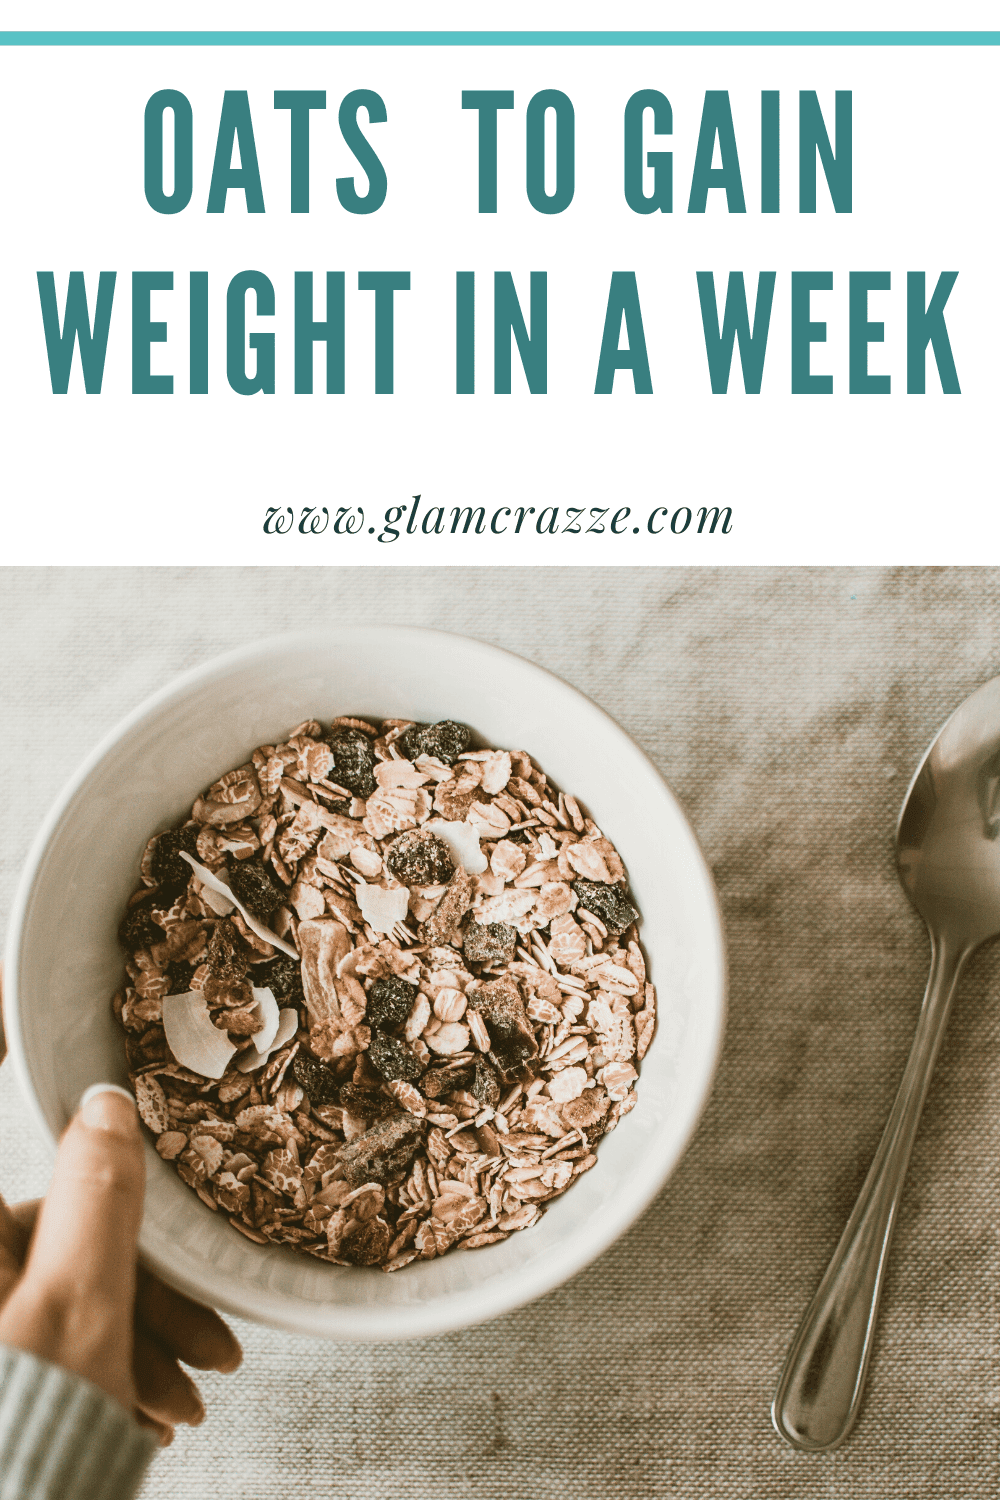 How to gain weight in a week while having oats